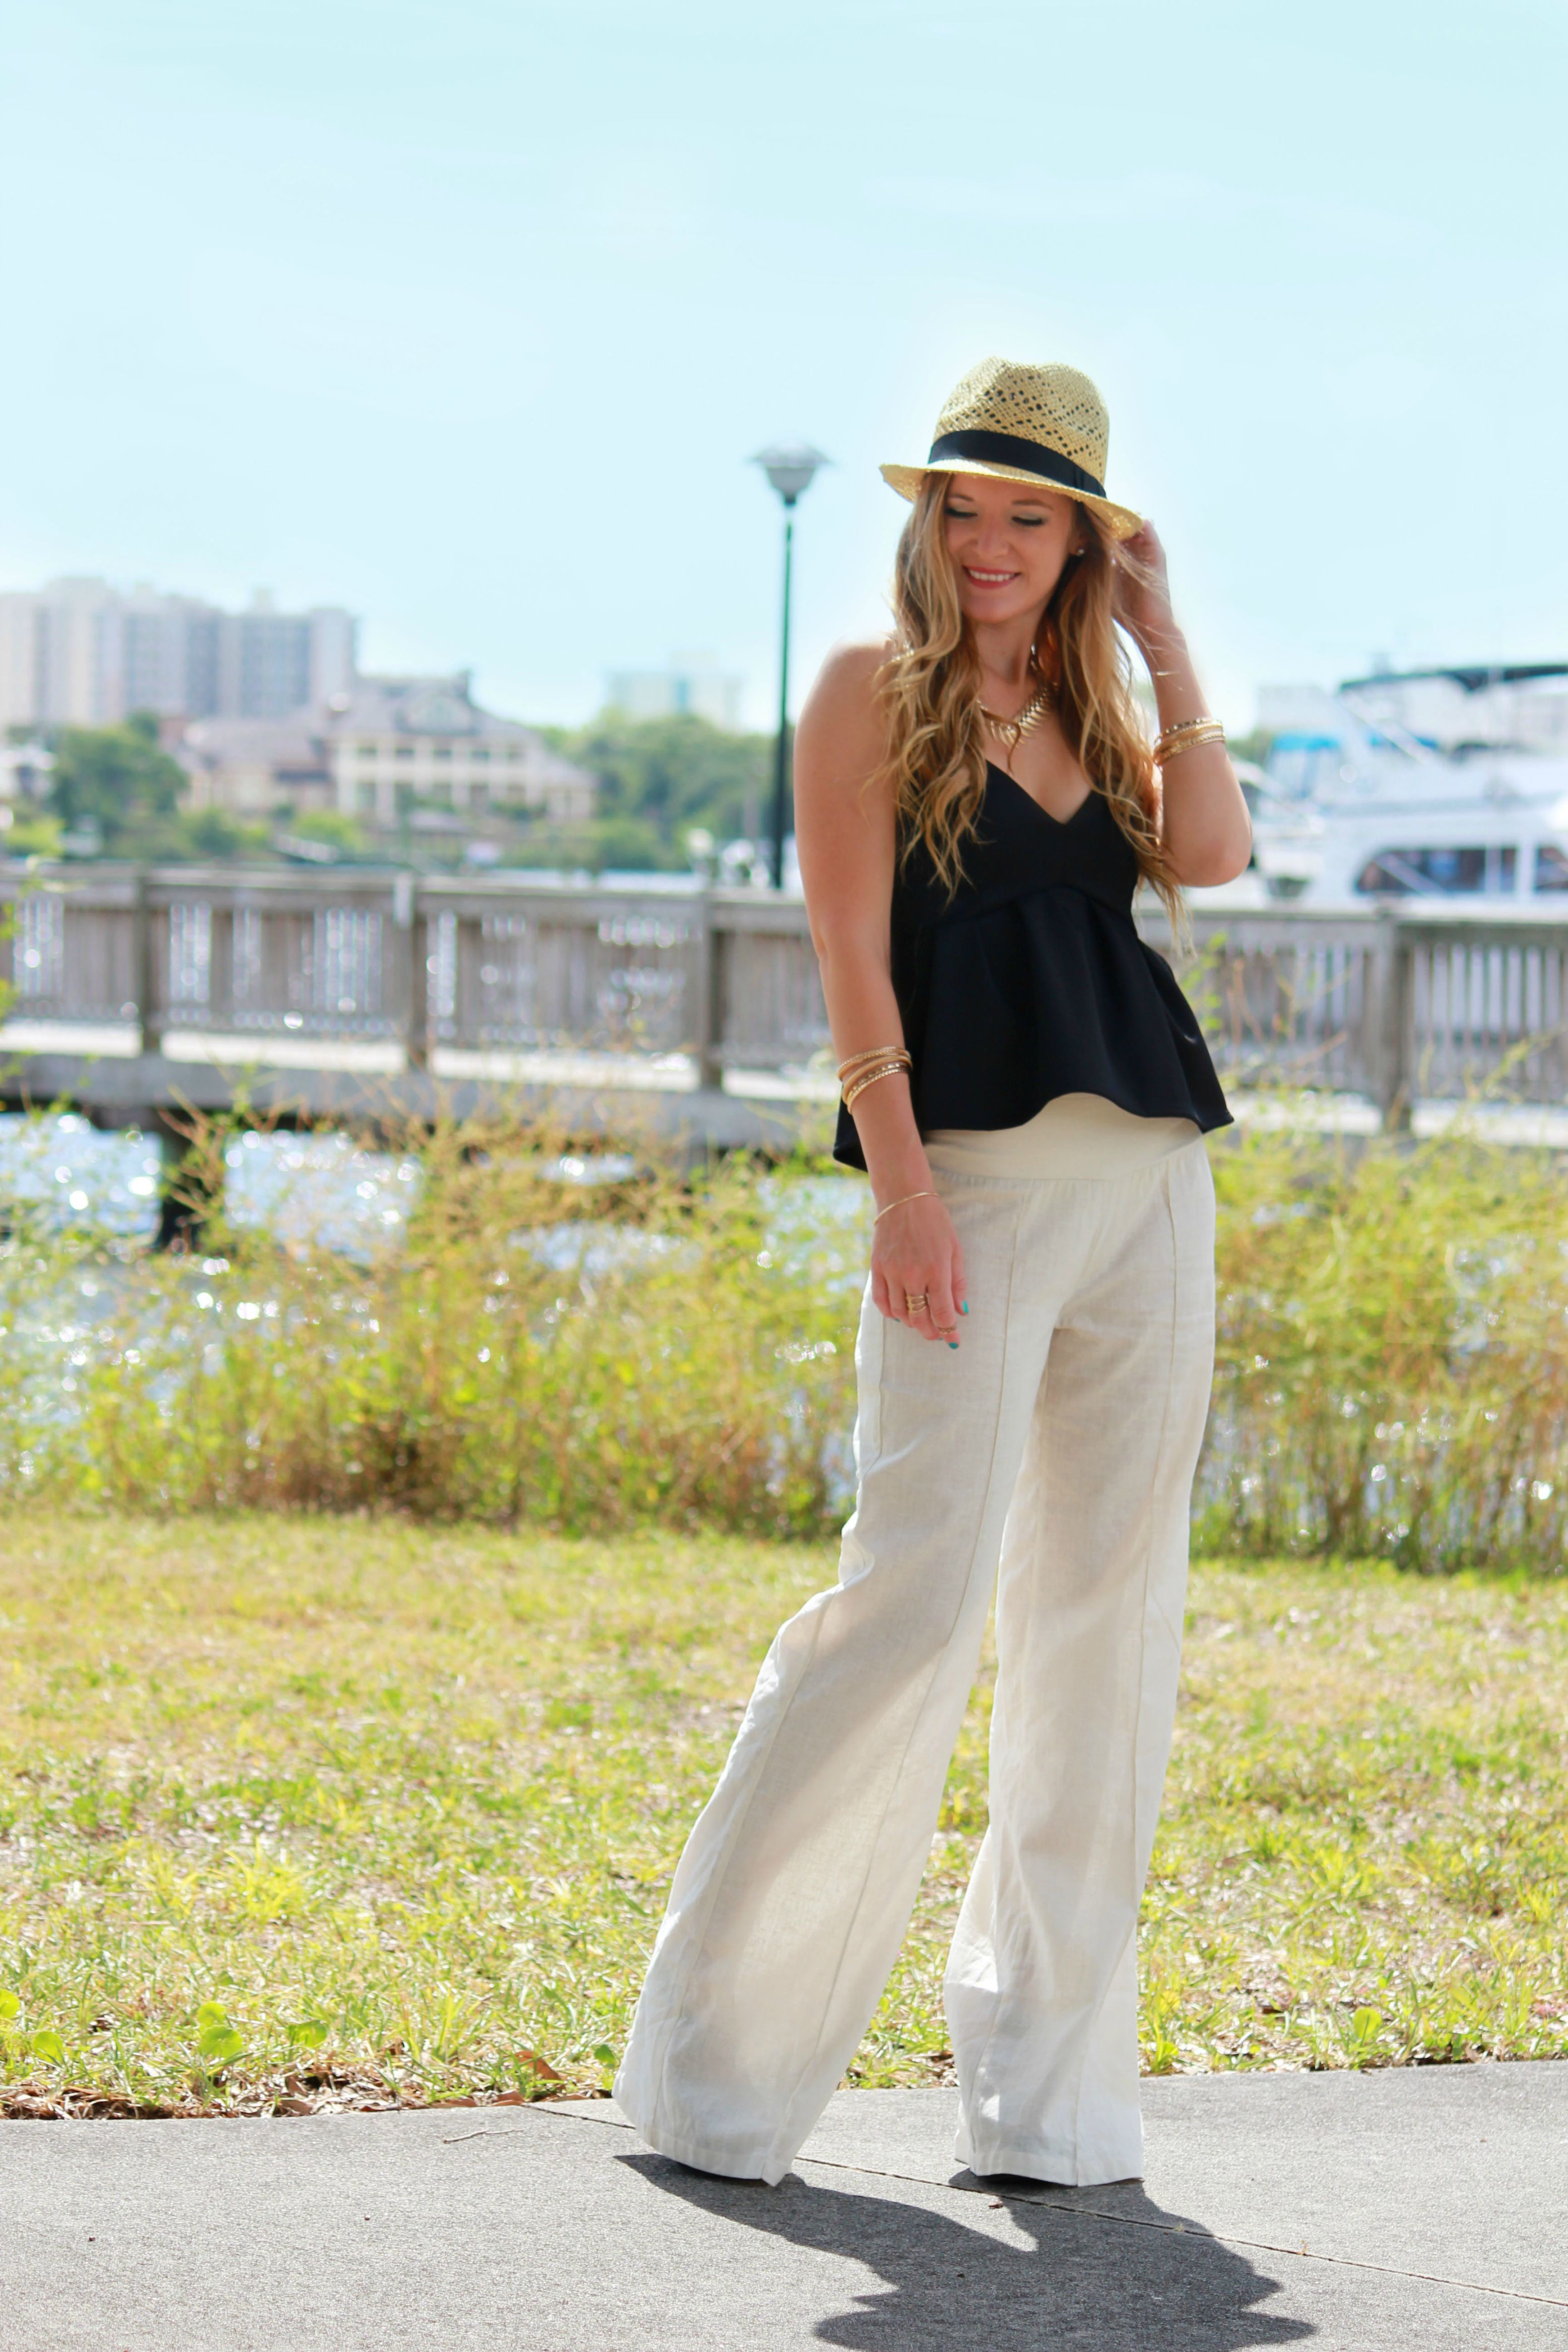 arden b linen pants, linen pants, peplum top, arden b peplum top, forever 21 hat, gold jewelry, vacation outfit, summer outfit